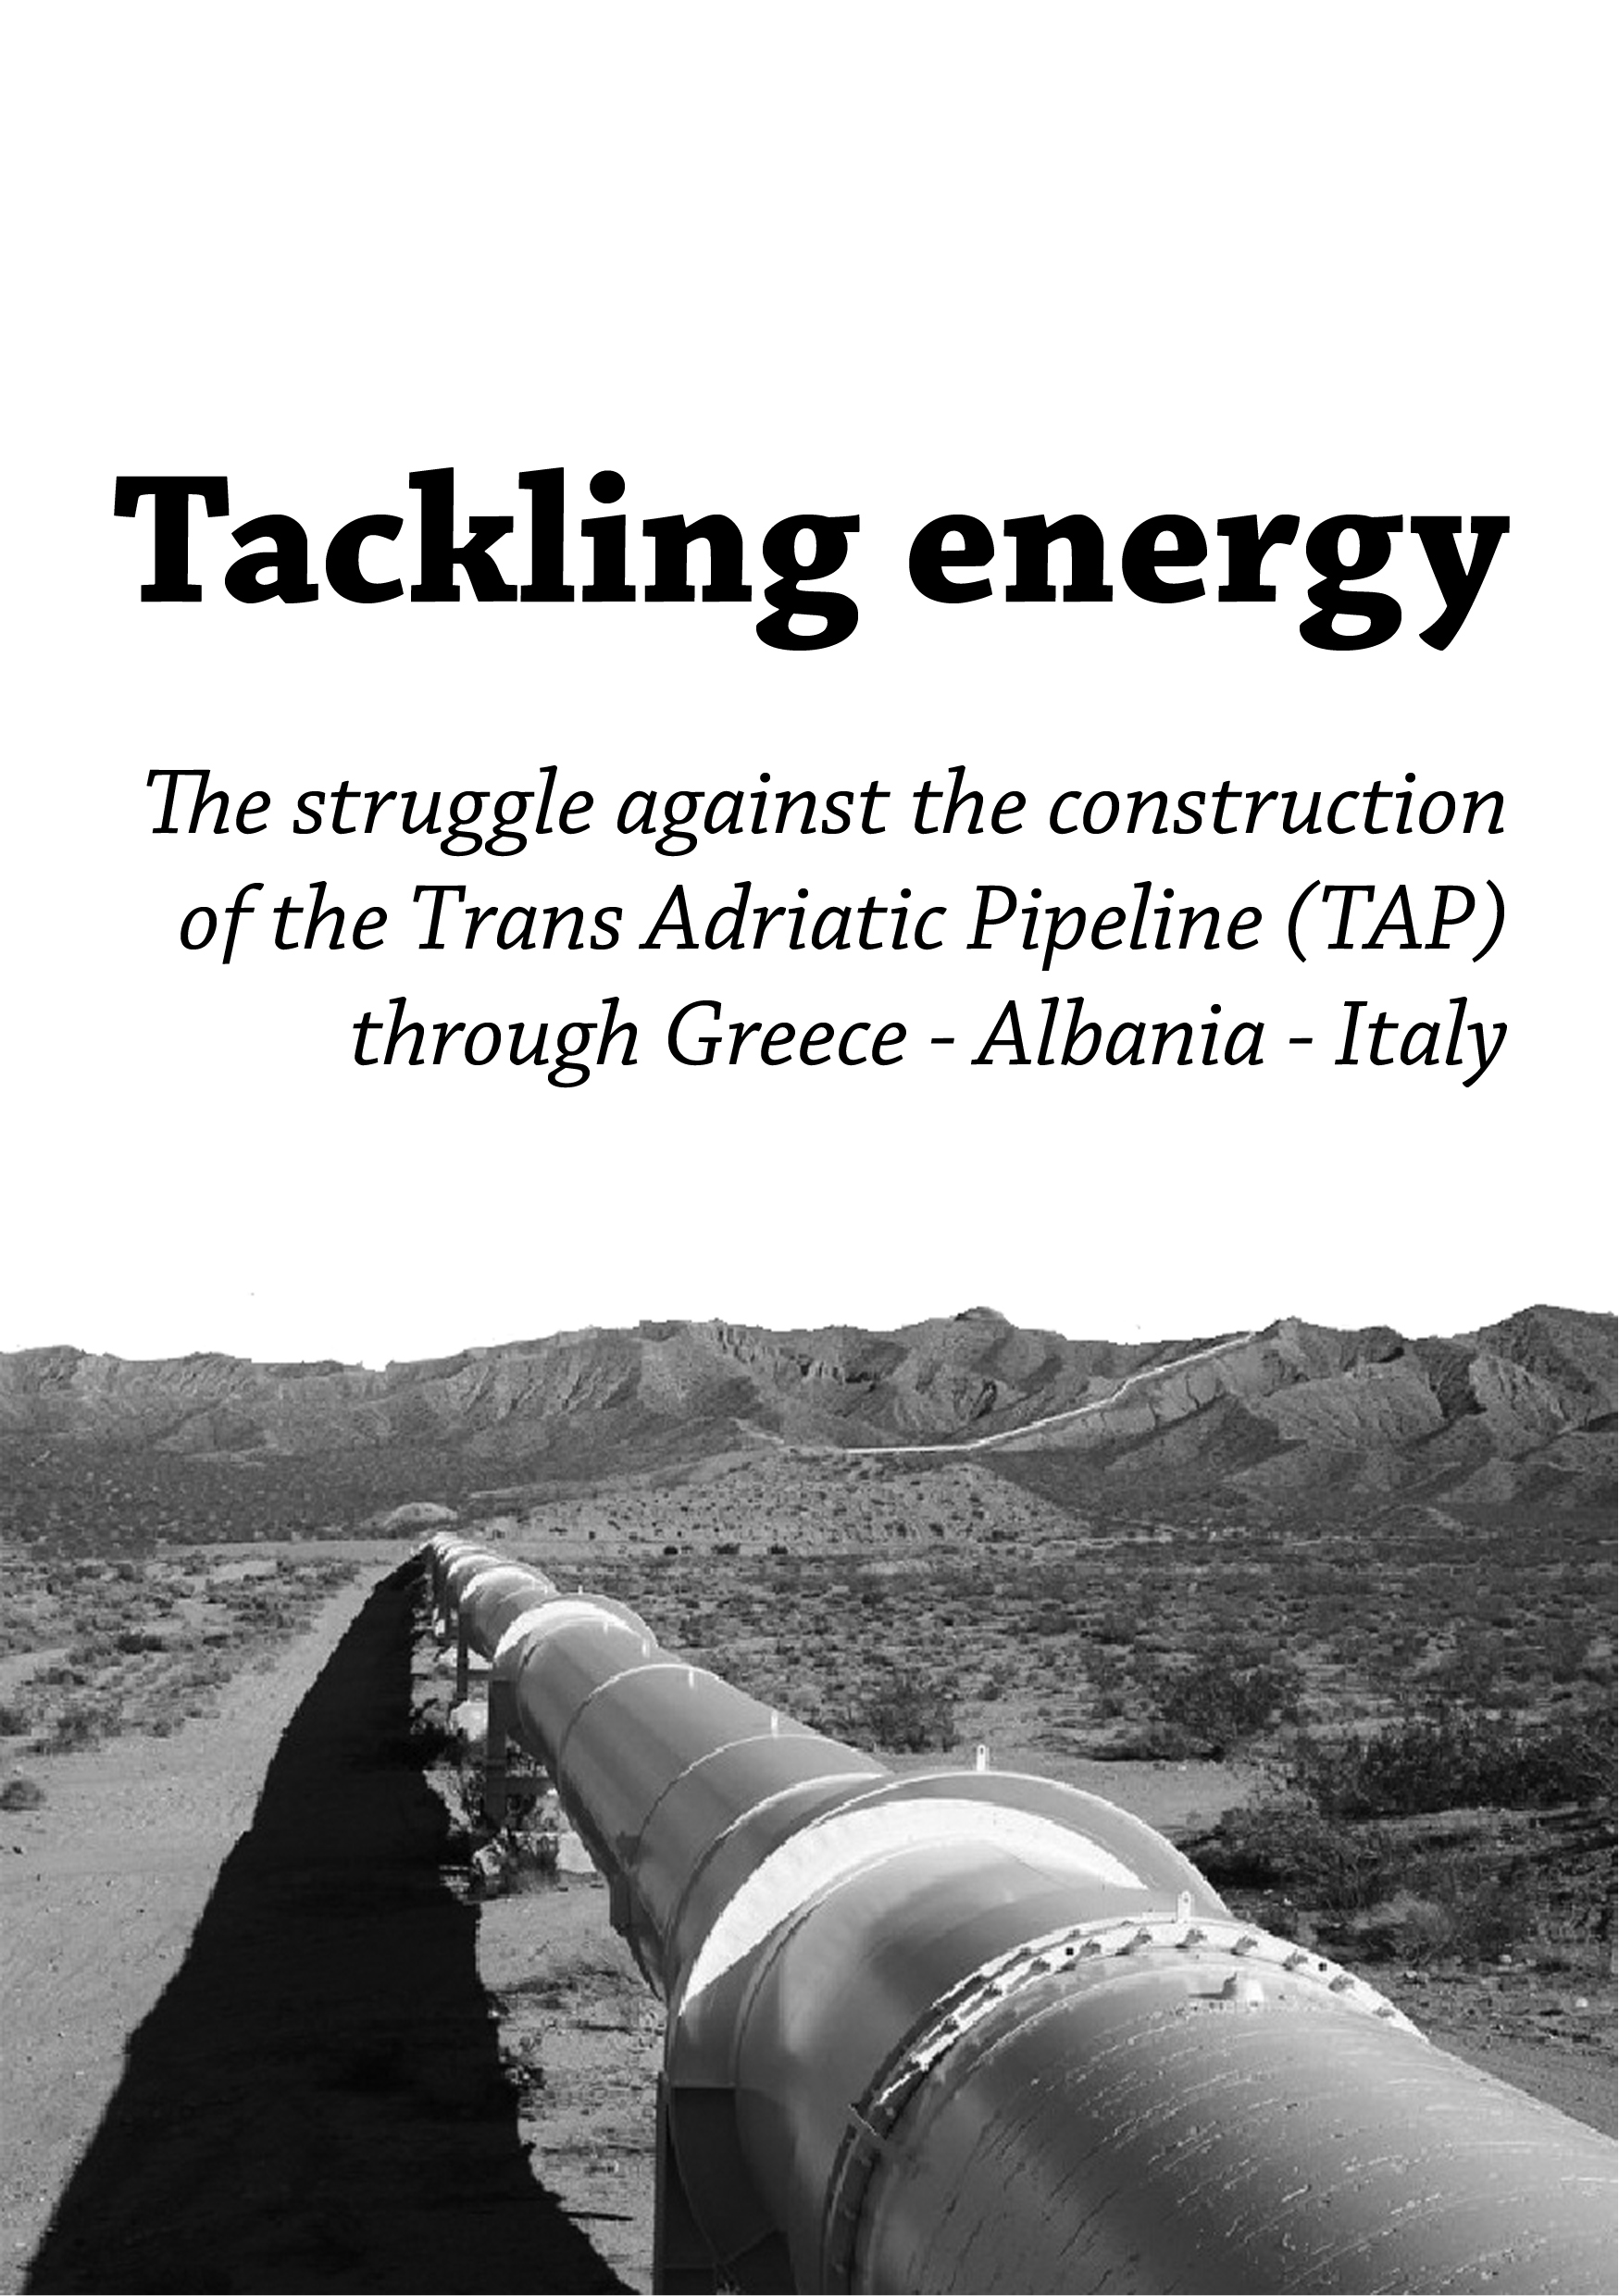 Tackling energy – The struggle against the construction of the Trans Adriatic Pipeline (TAP) through Greece – Albania – Italy